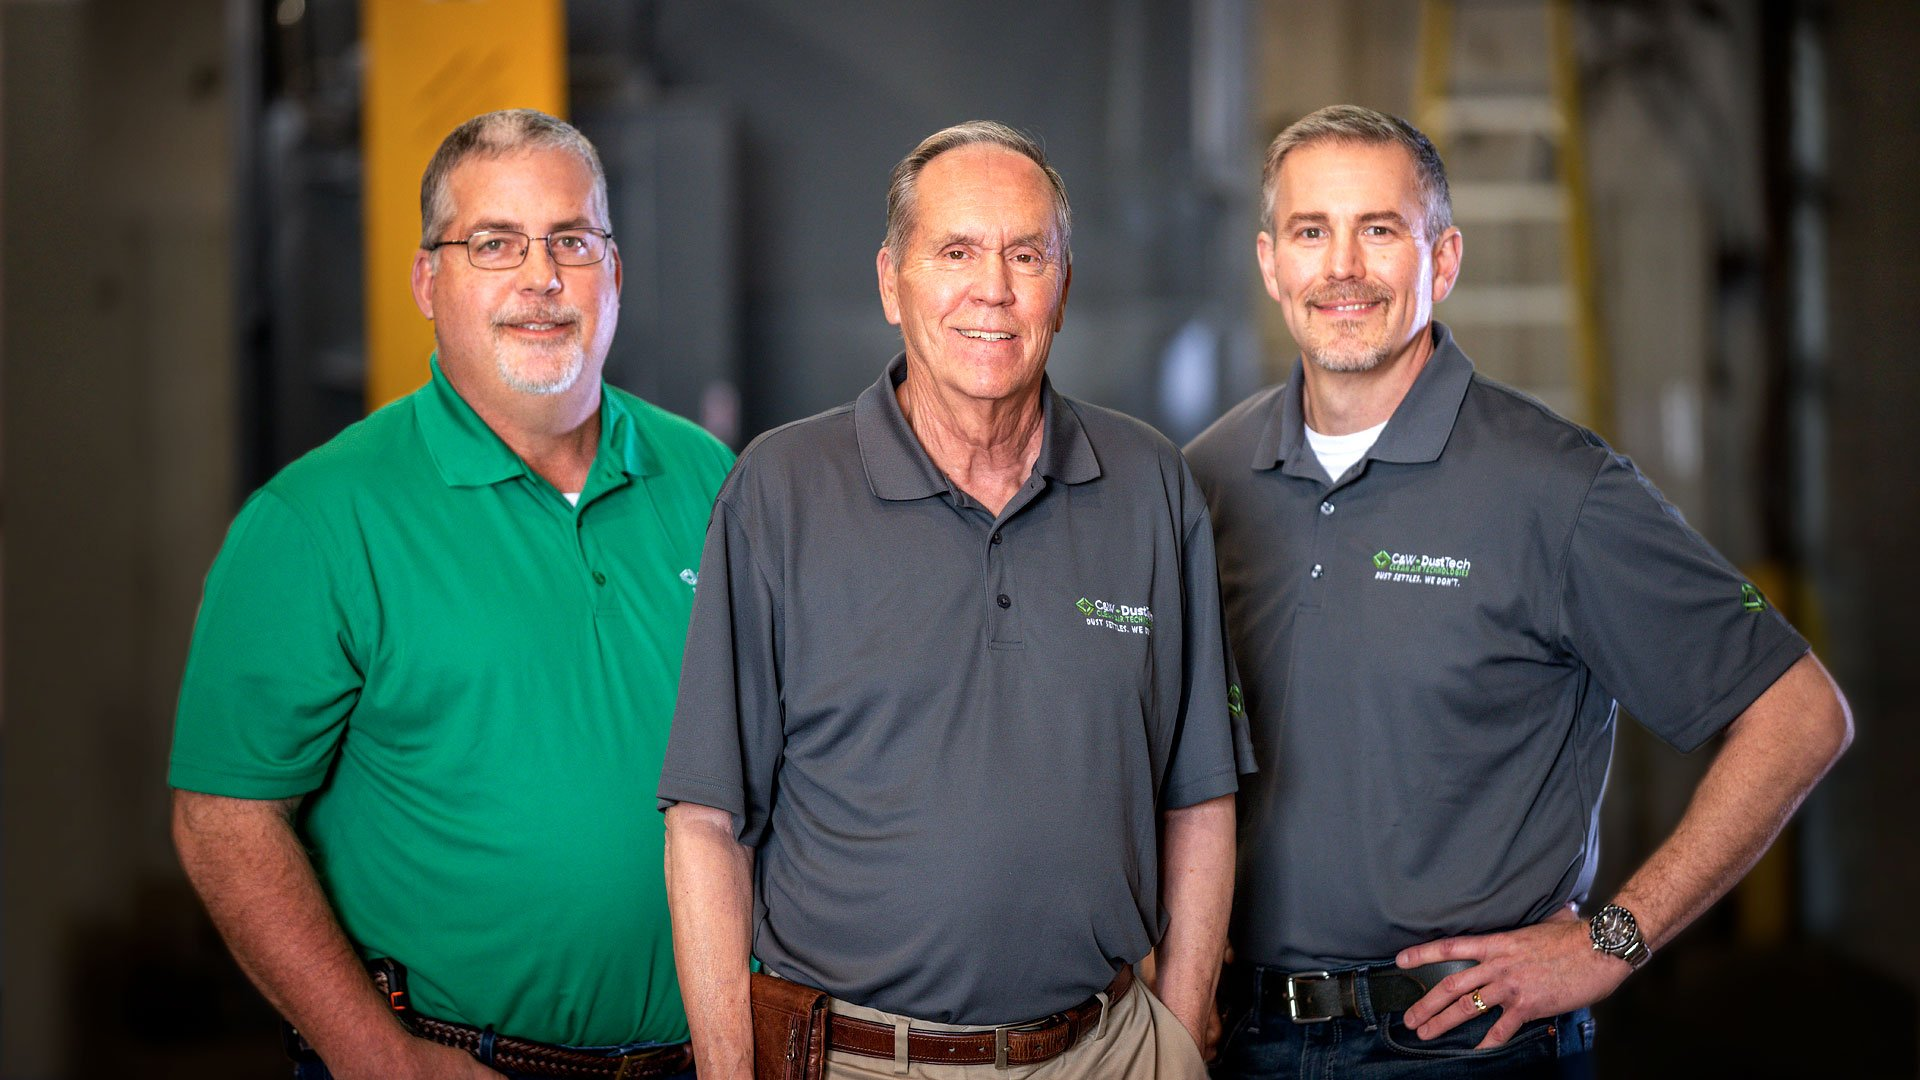 C&W DustTech Leadership